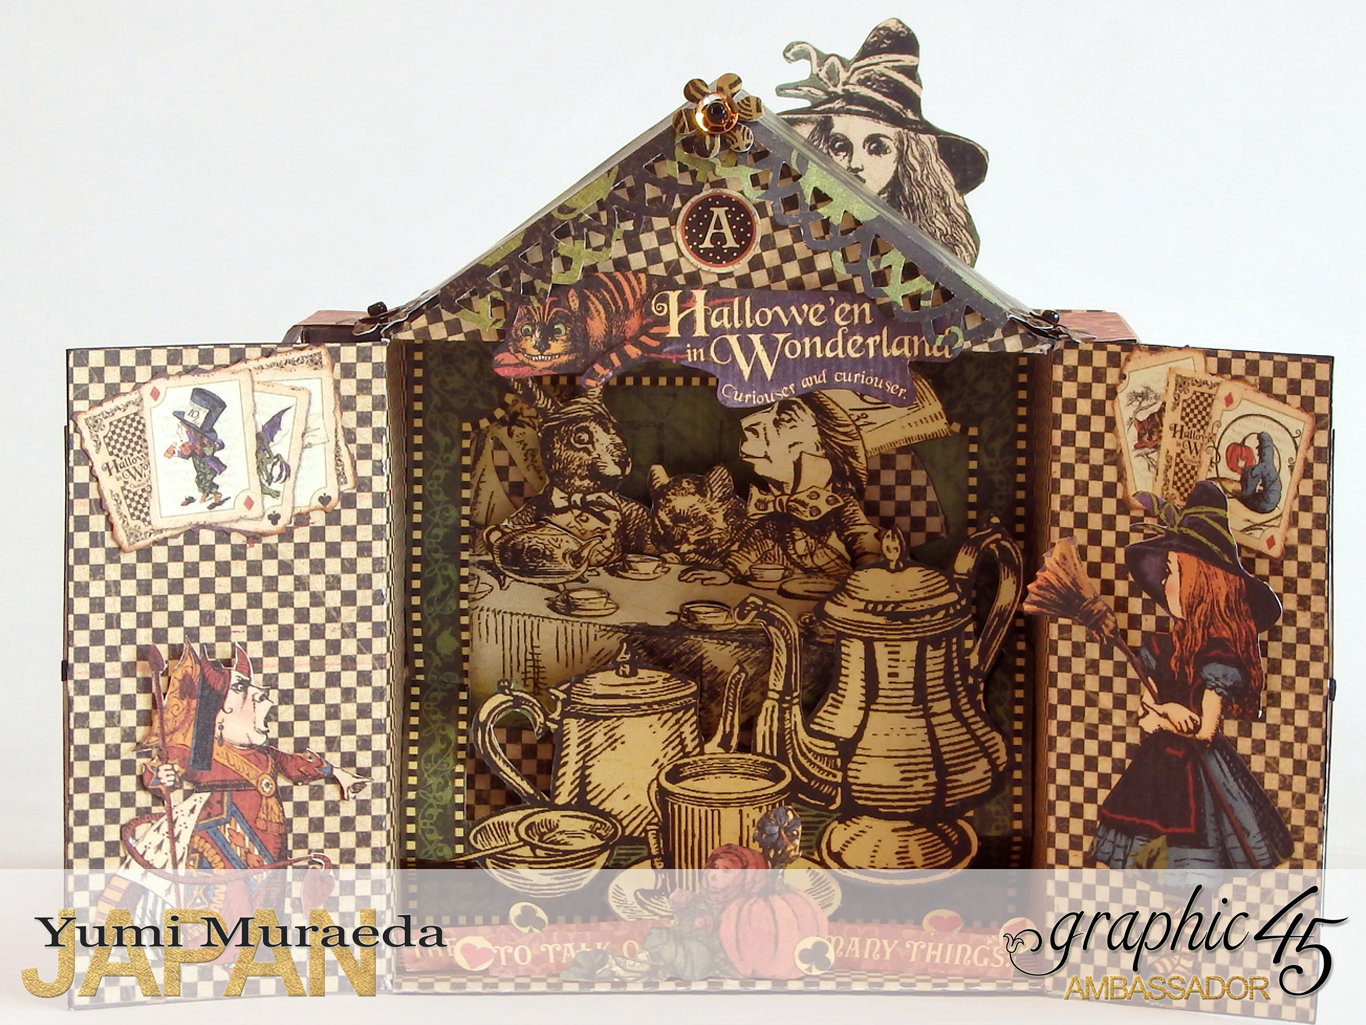 5 Alices Odd Tea HouseHalloween Wonderlandby Yumi MuraedaProduct by Graphic 45